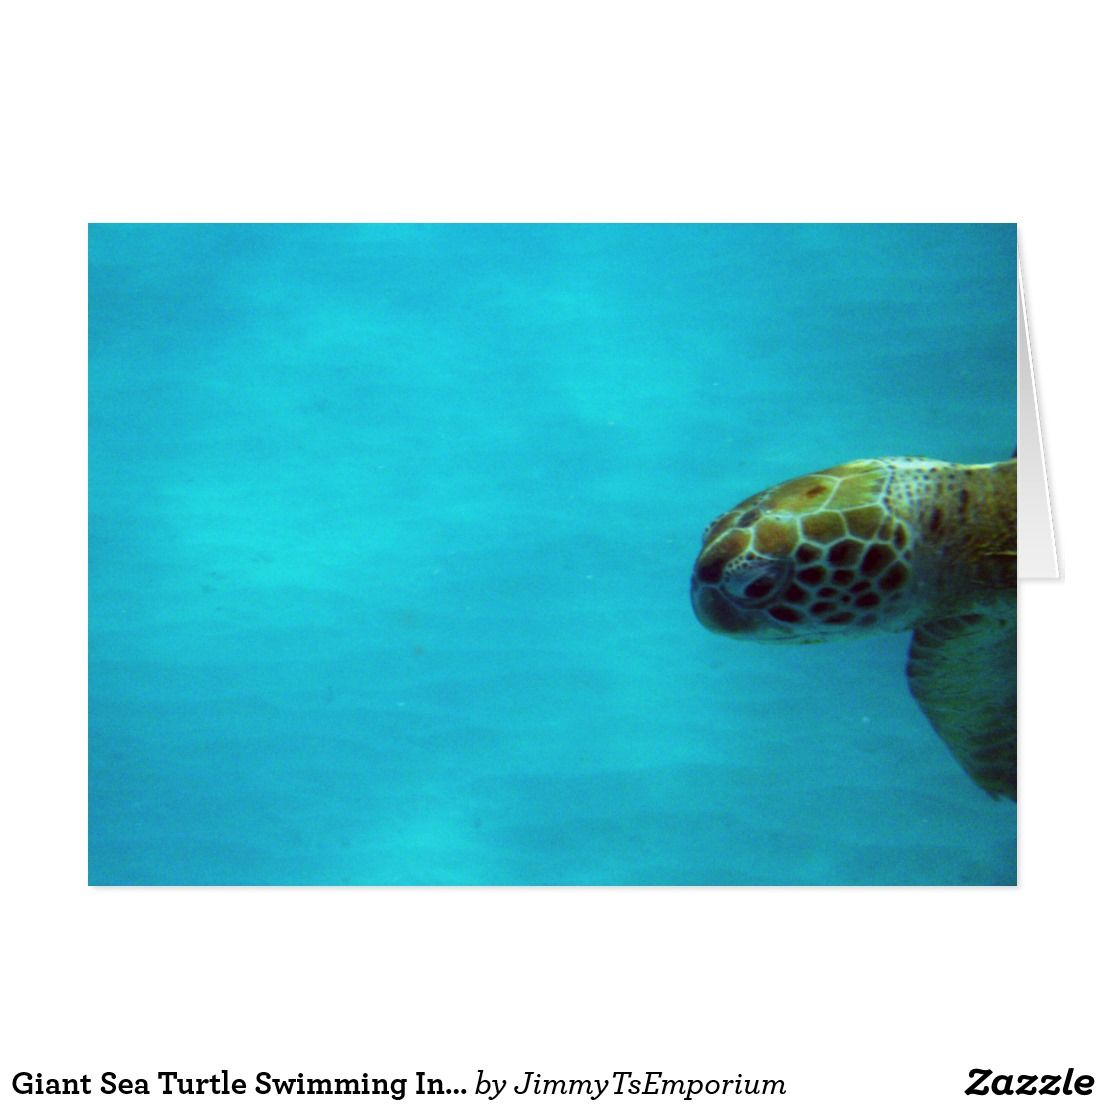 Giant Sea Turtle Swimming Into View Want To See More Great Items